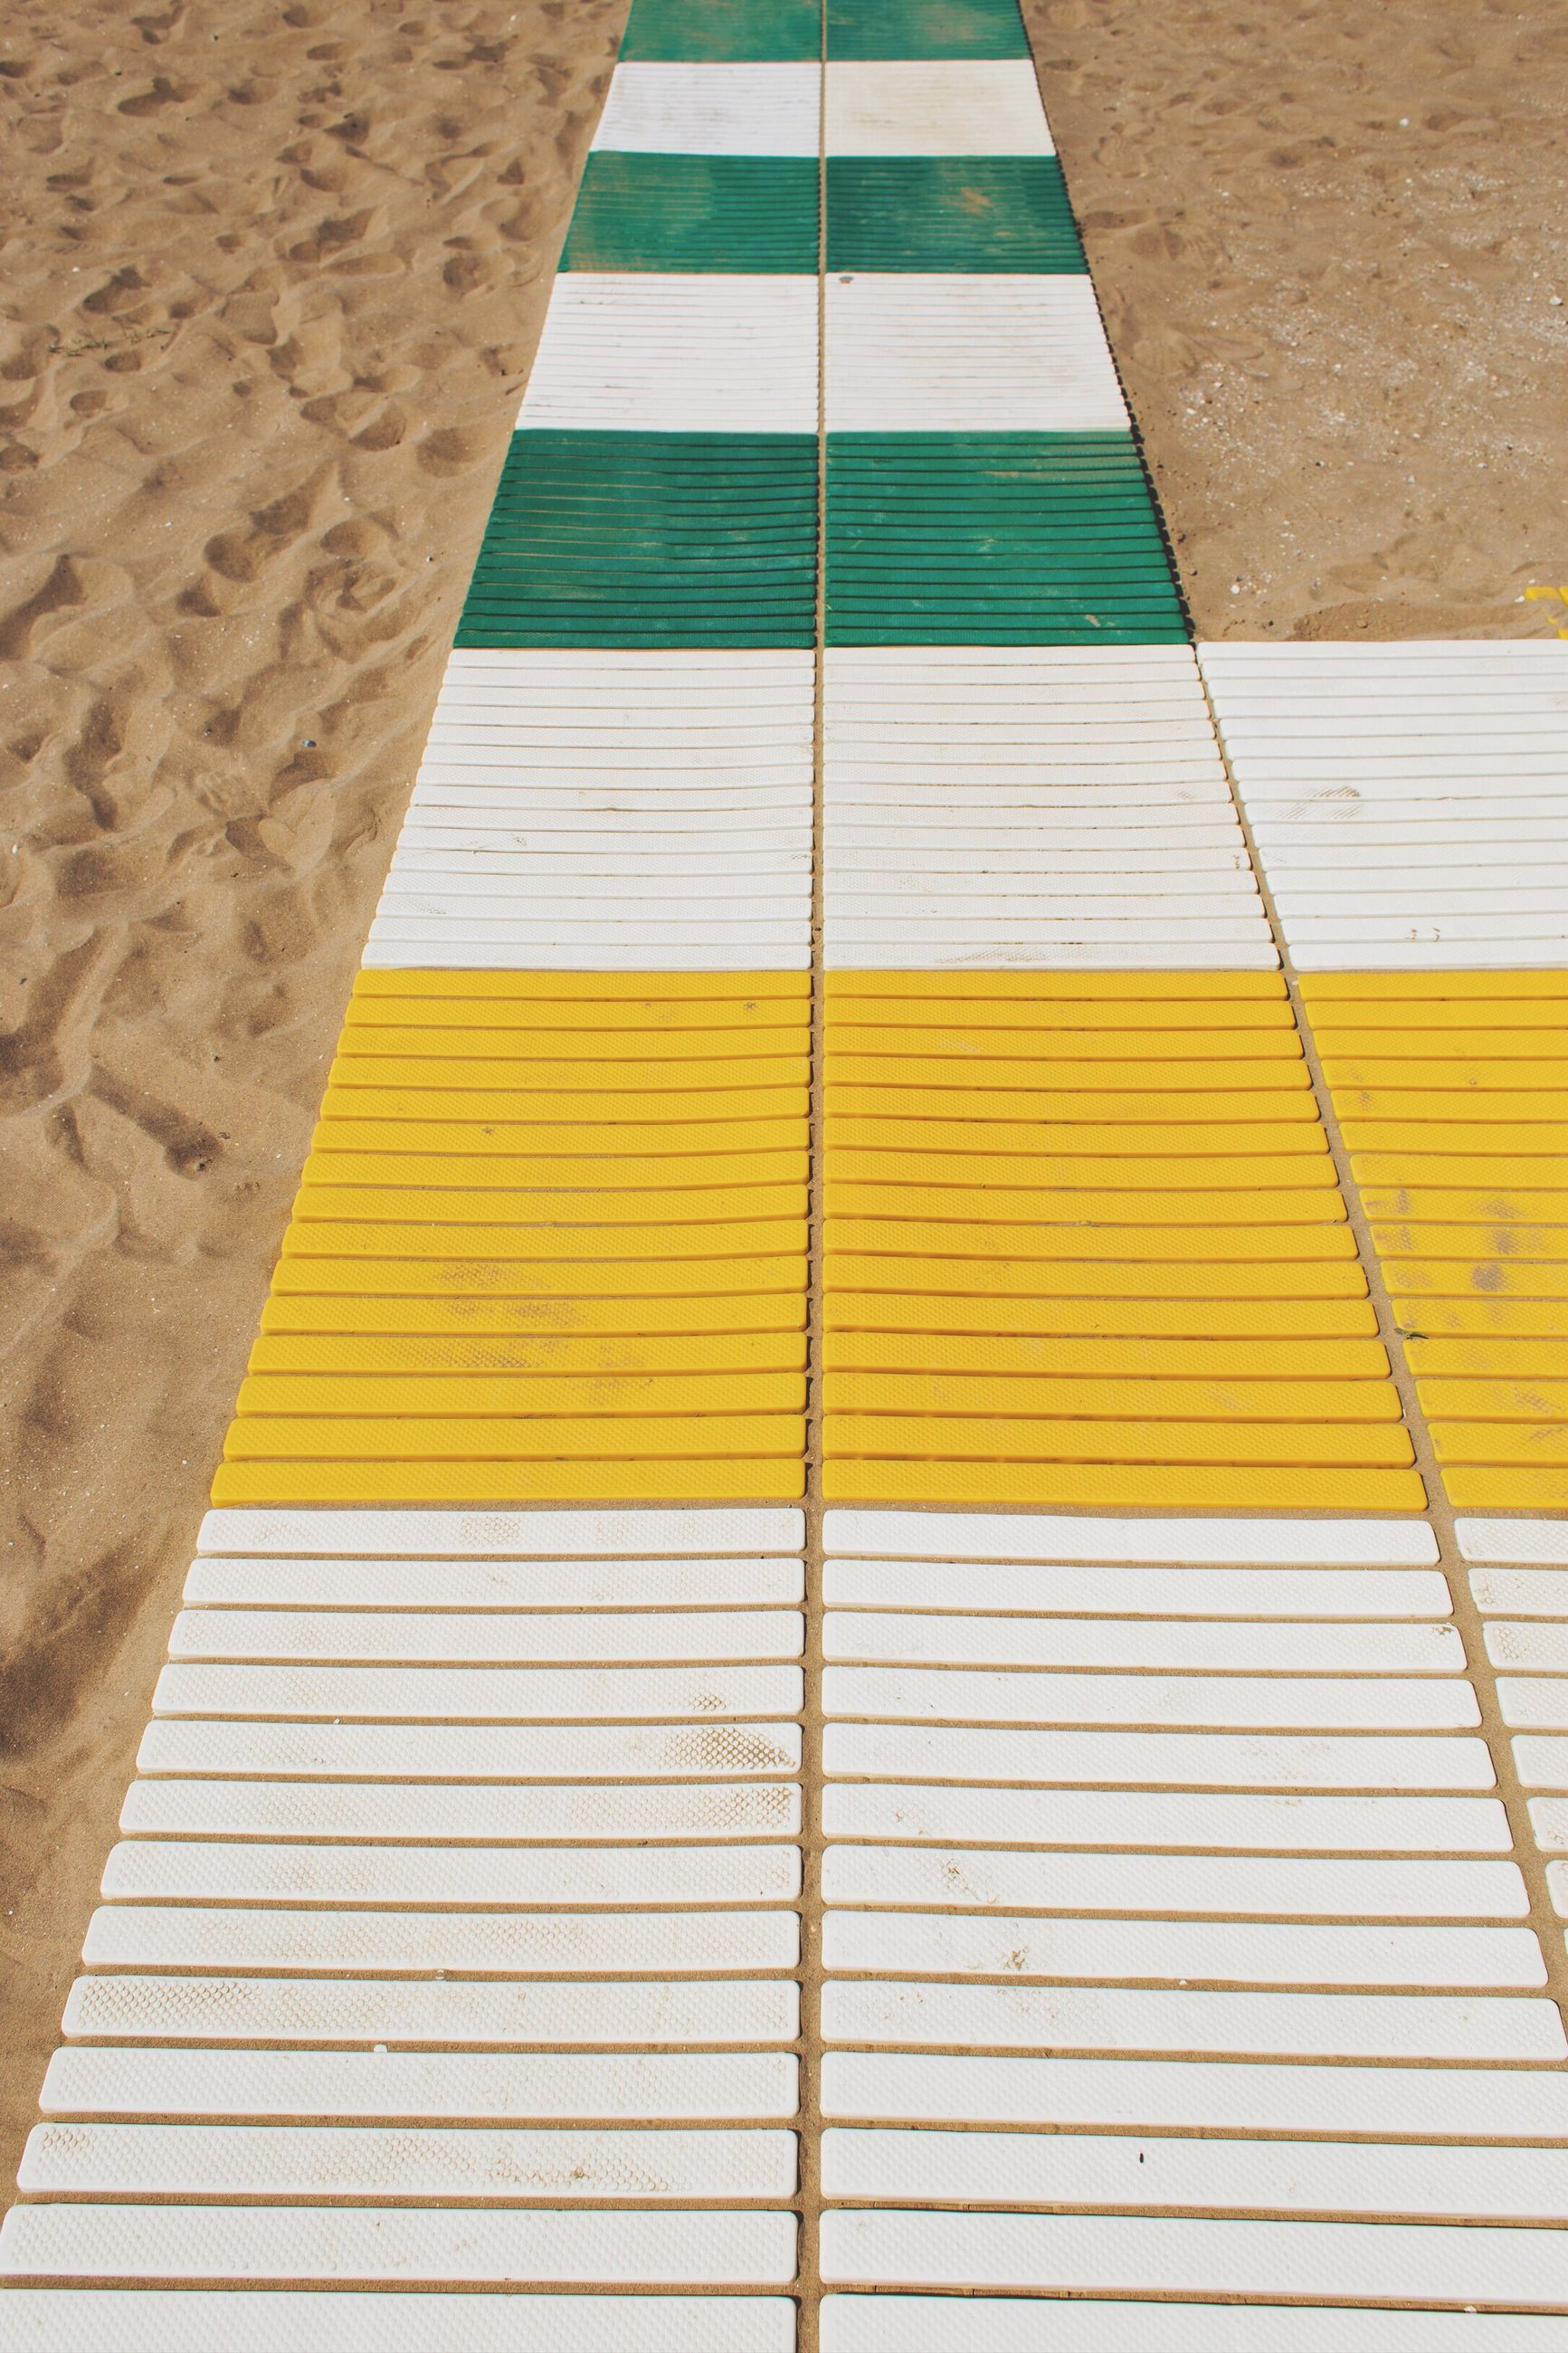 yellow, high angle view, no people, pattern, architecture, day, multi colored, outdoors, full frame, built structure, absence, flooring, backgrounds, striped, footpath, wall - building feature, close-up, line, tile, single line, tiled floor, swimming pool, dividing line